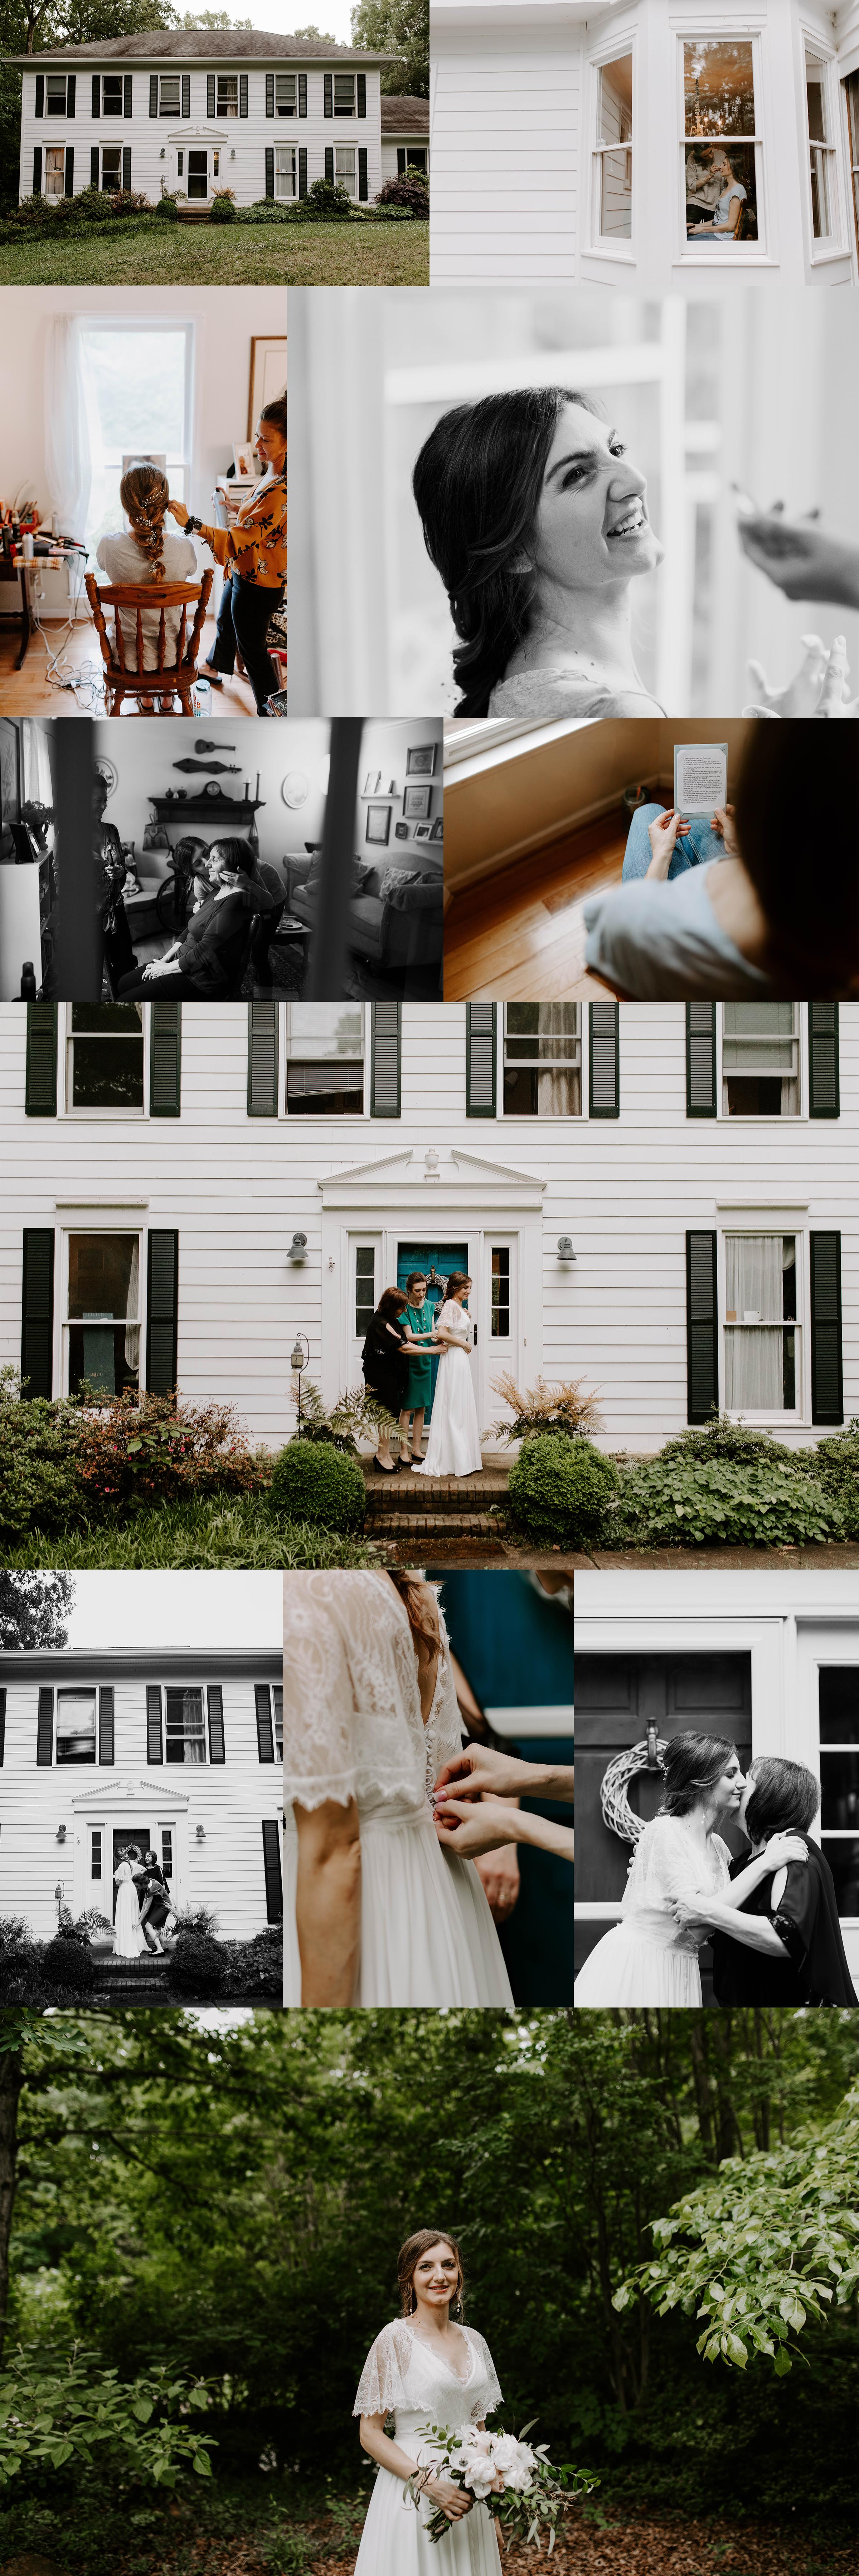 teal elopement getting ready.jpg